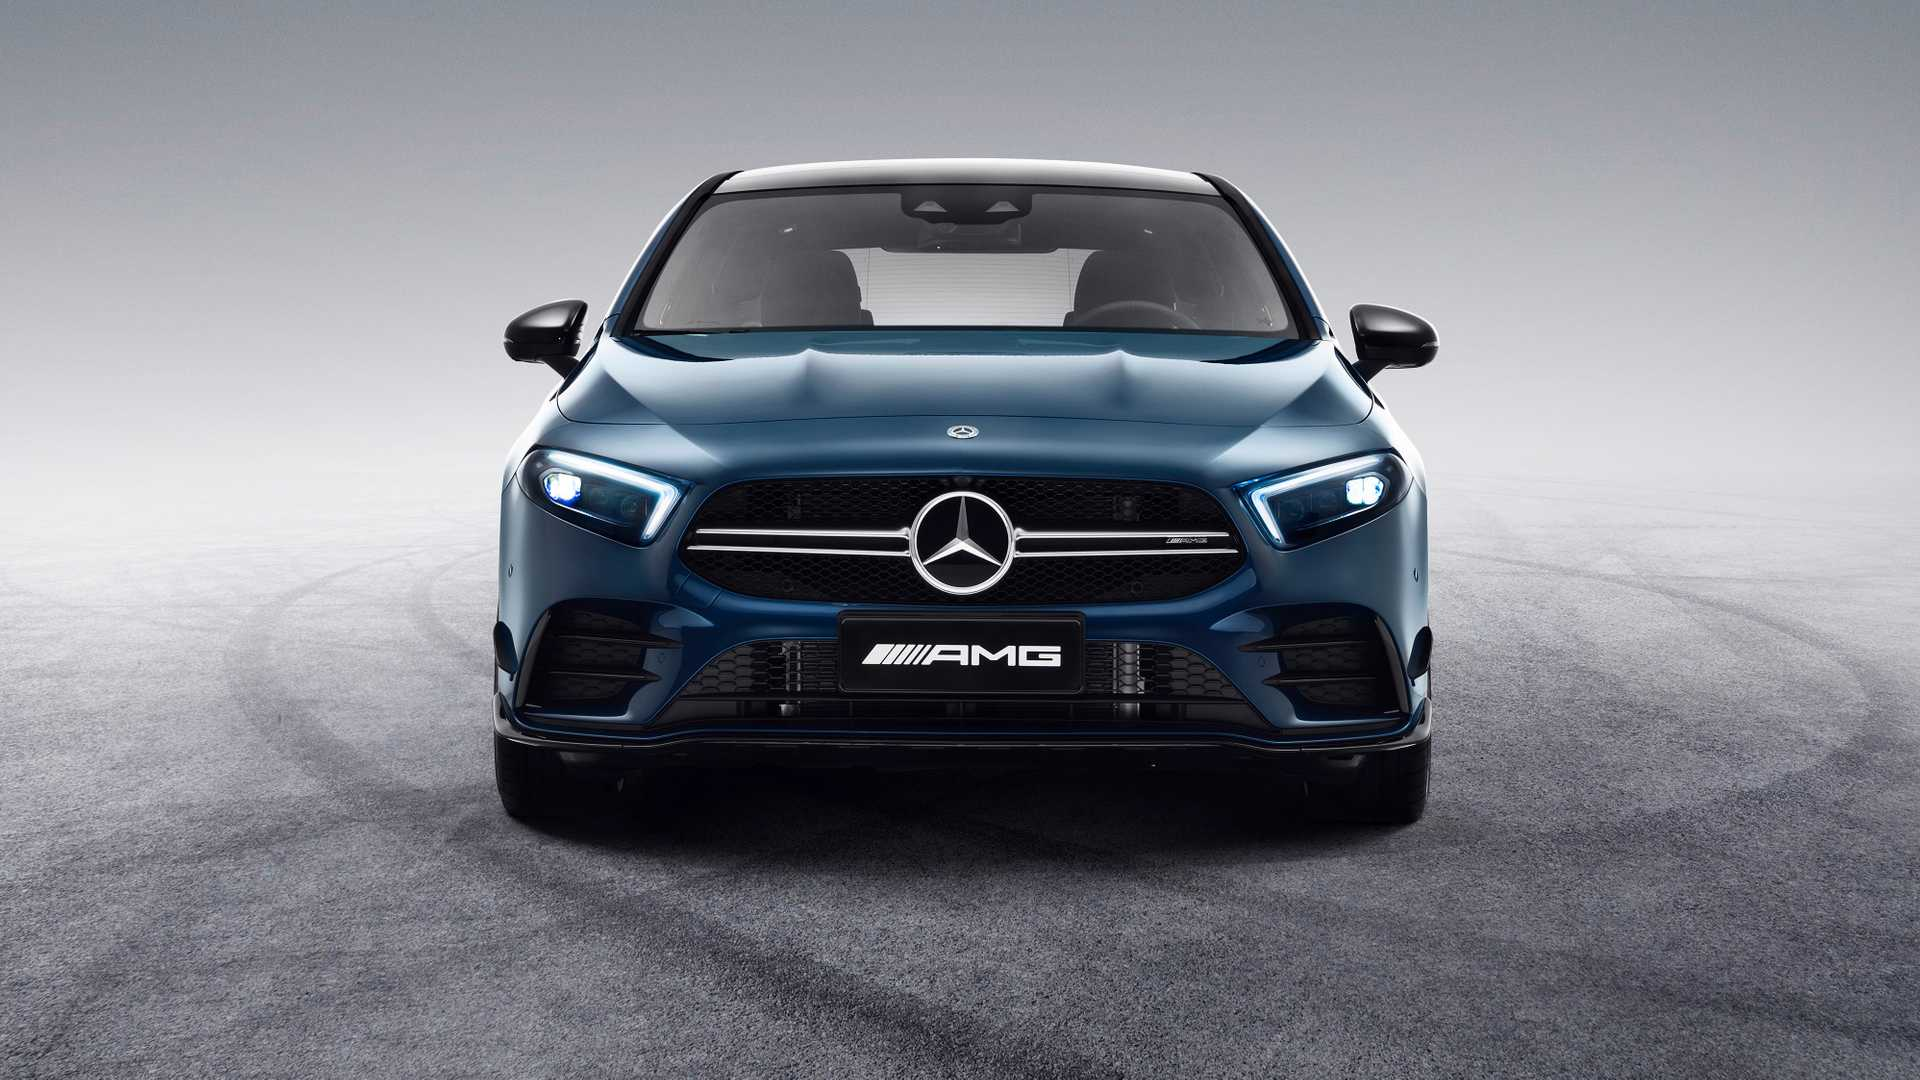 2020 Mercedes-AMG A35 L Sedan 4MATIC Front Wallpaper (6)